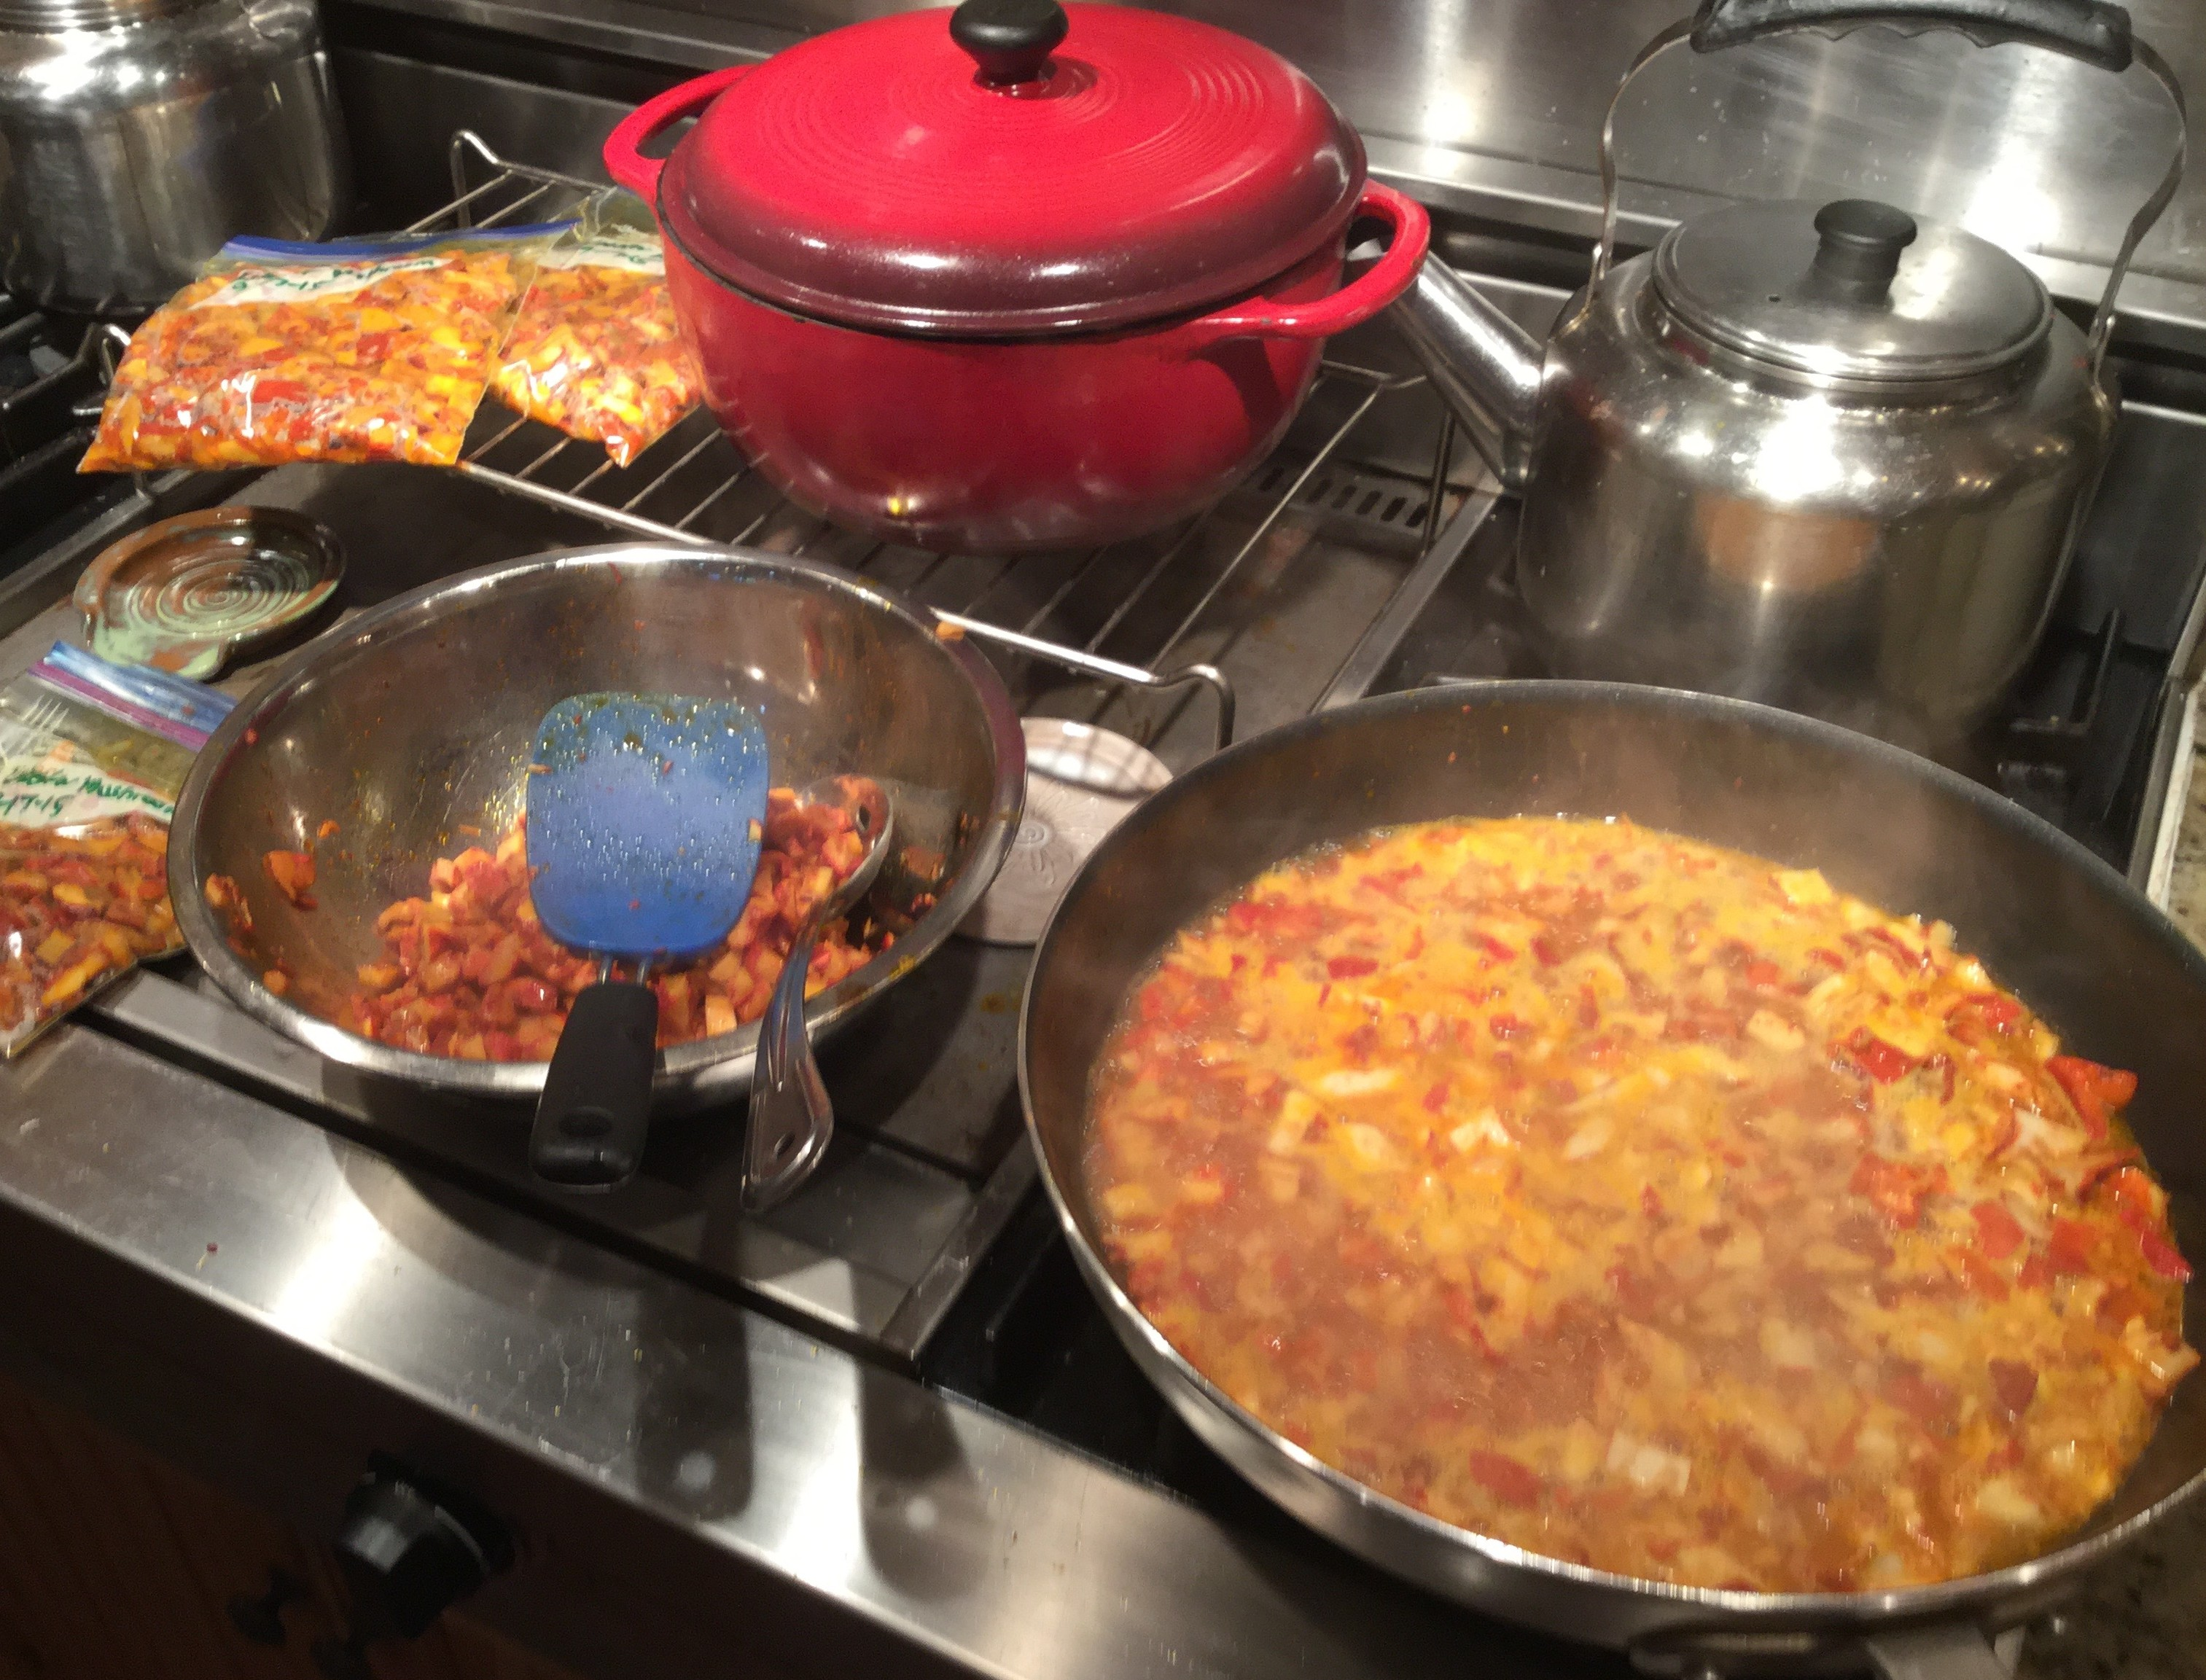 Sauteing Lobster Mushrooms